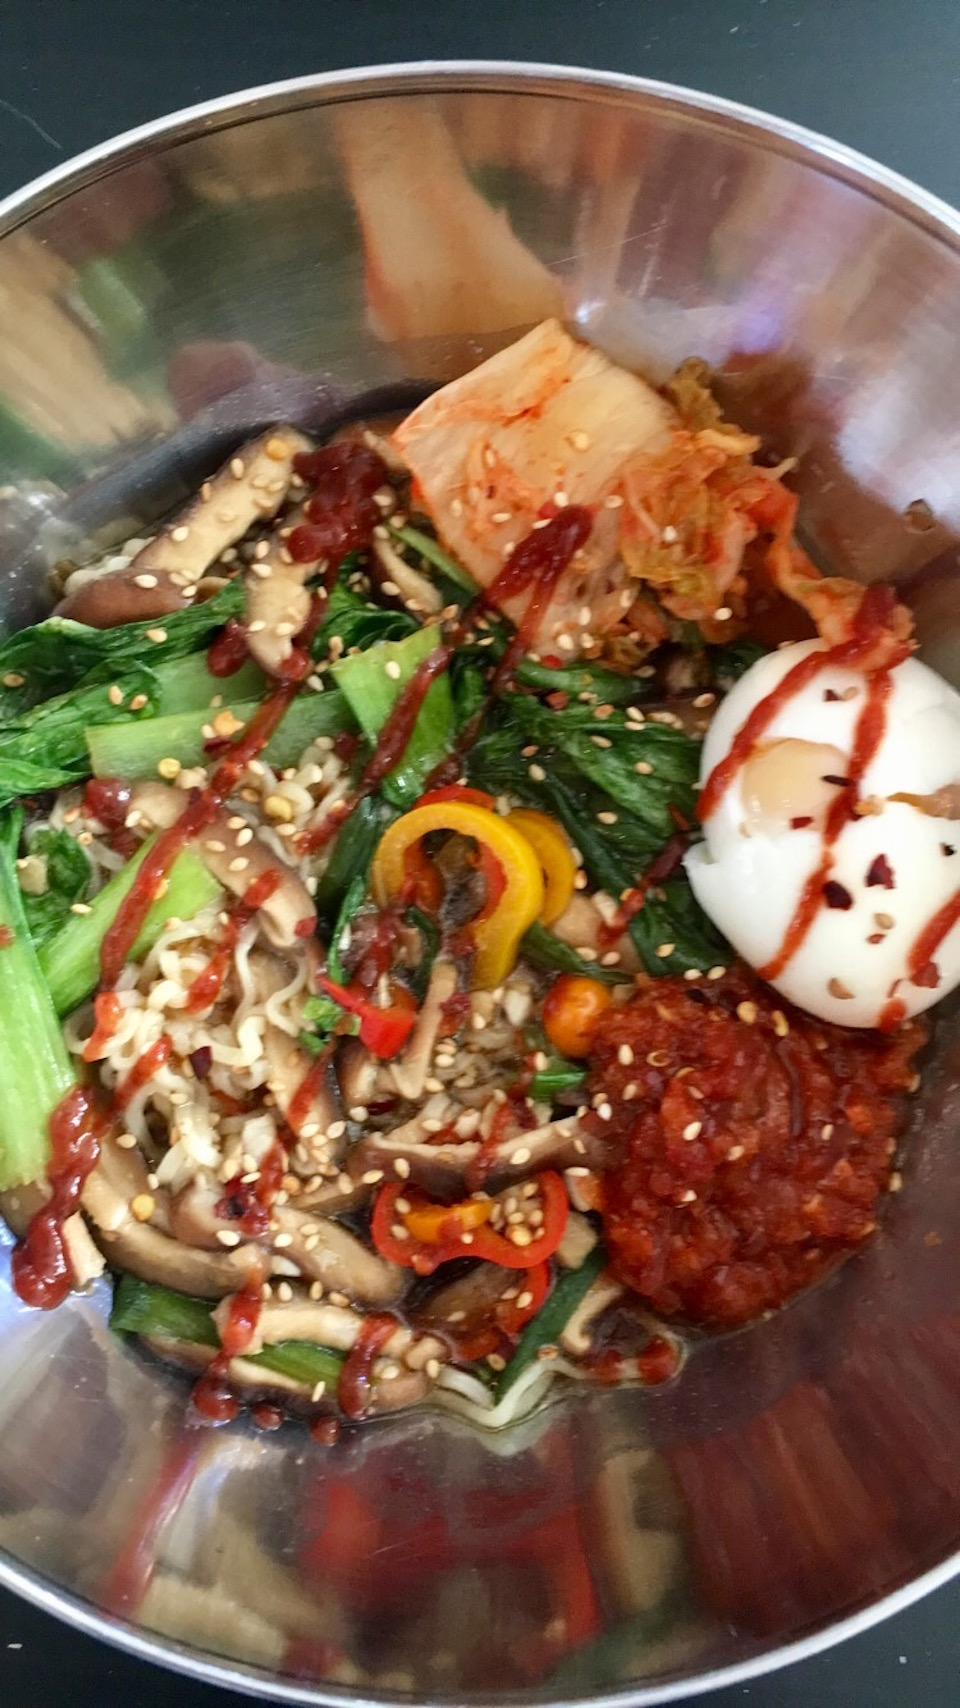 Here's a simple vegetarian ramen recipe with kimchi, mushrooms, sweet peppers, and bok choy.